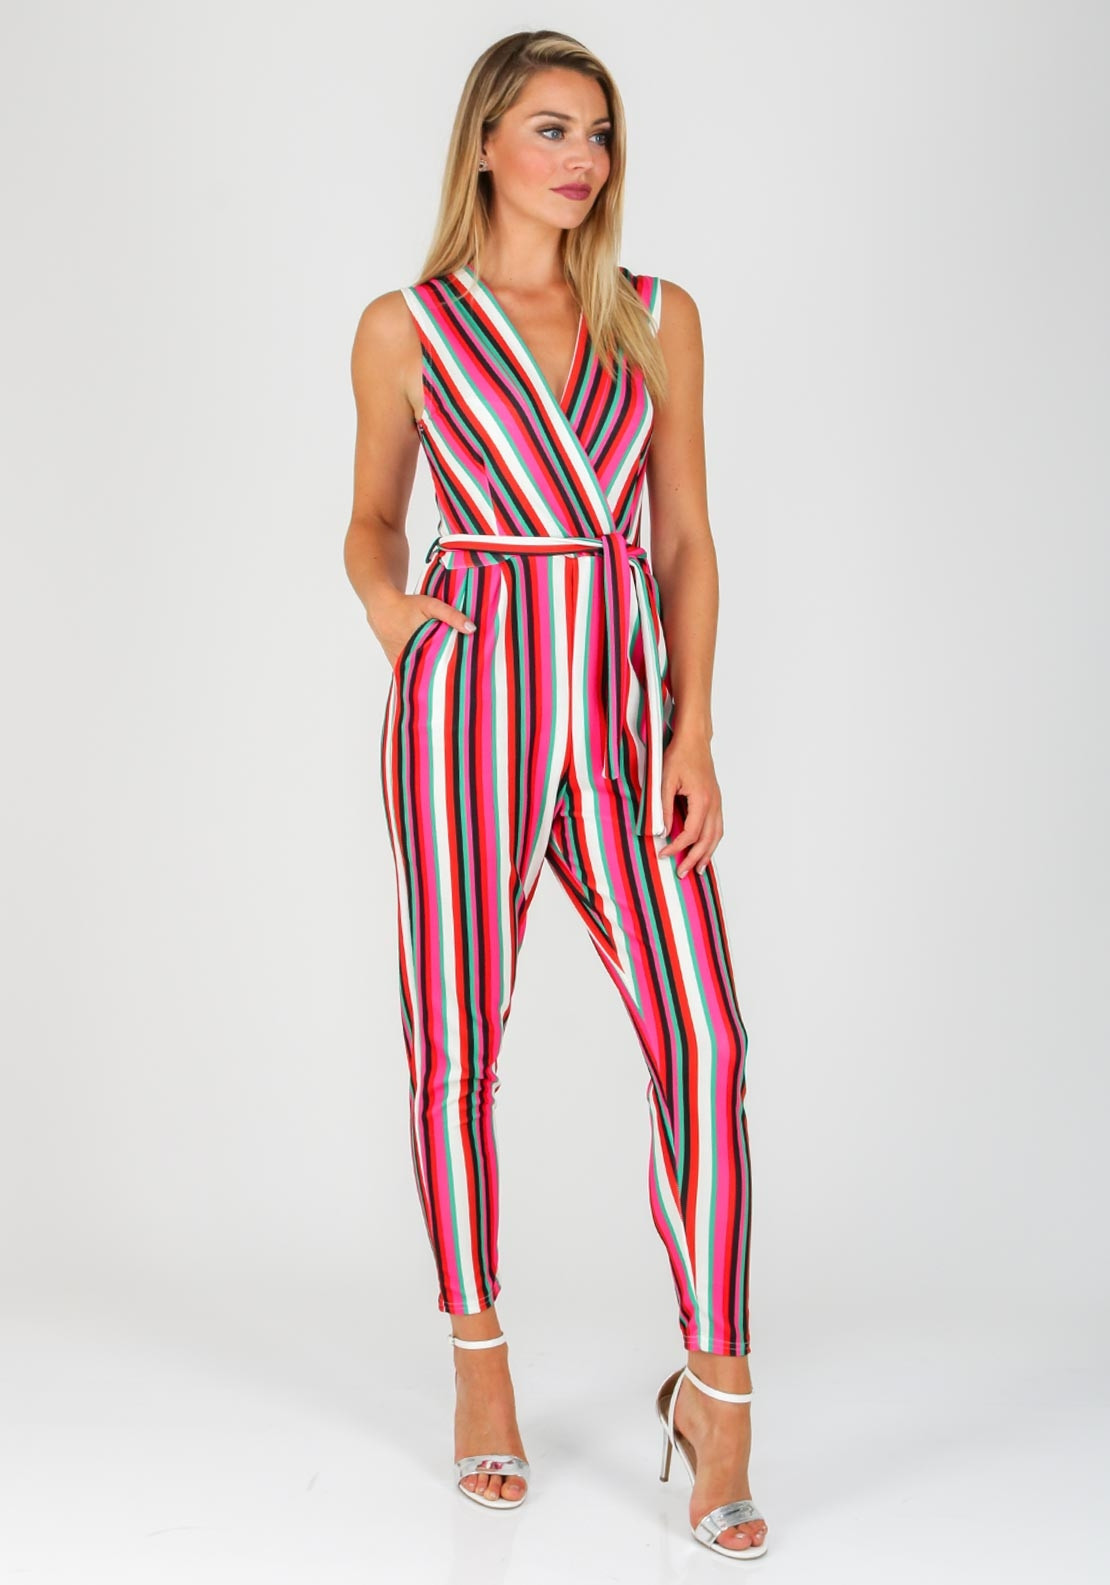 9a9d2d7b2545 Boutique Striped Slim Leg Jumpsuit, Pink | McElhinneys